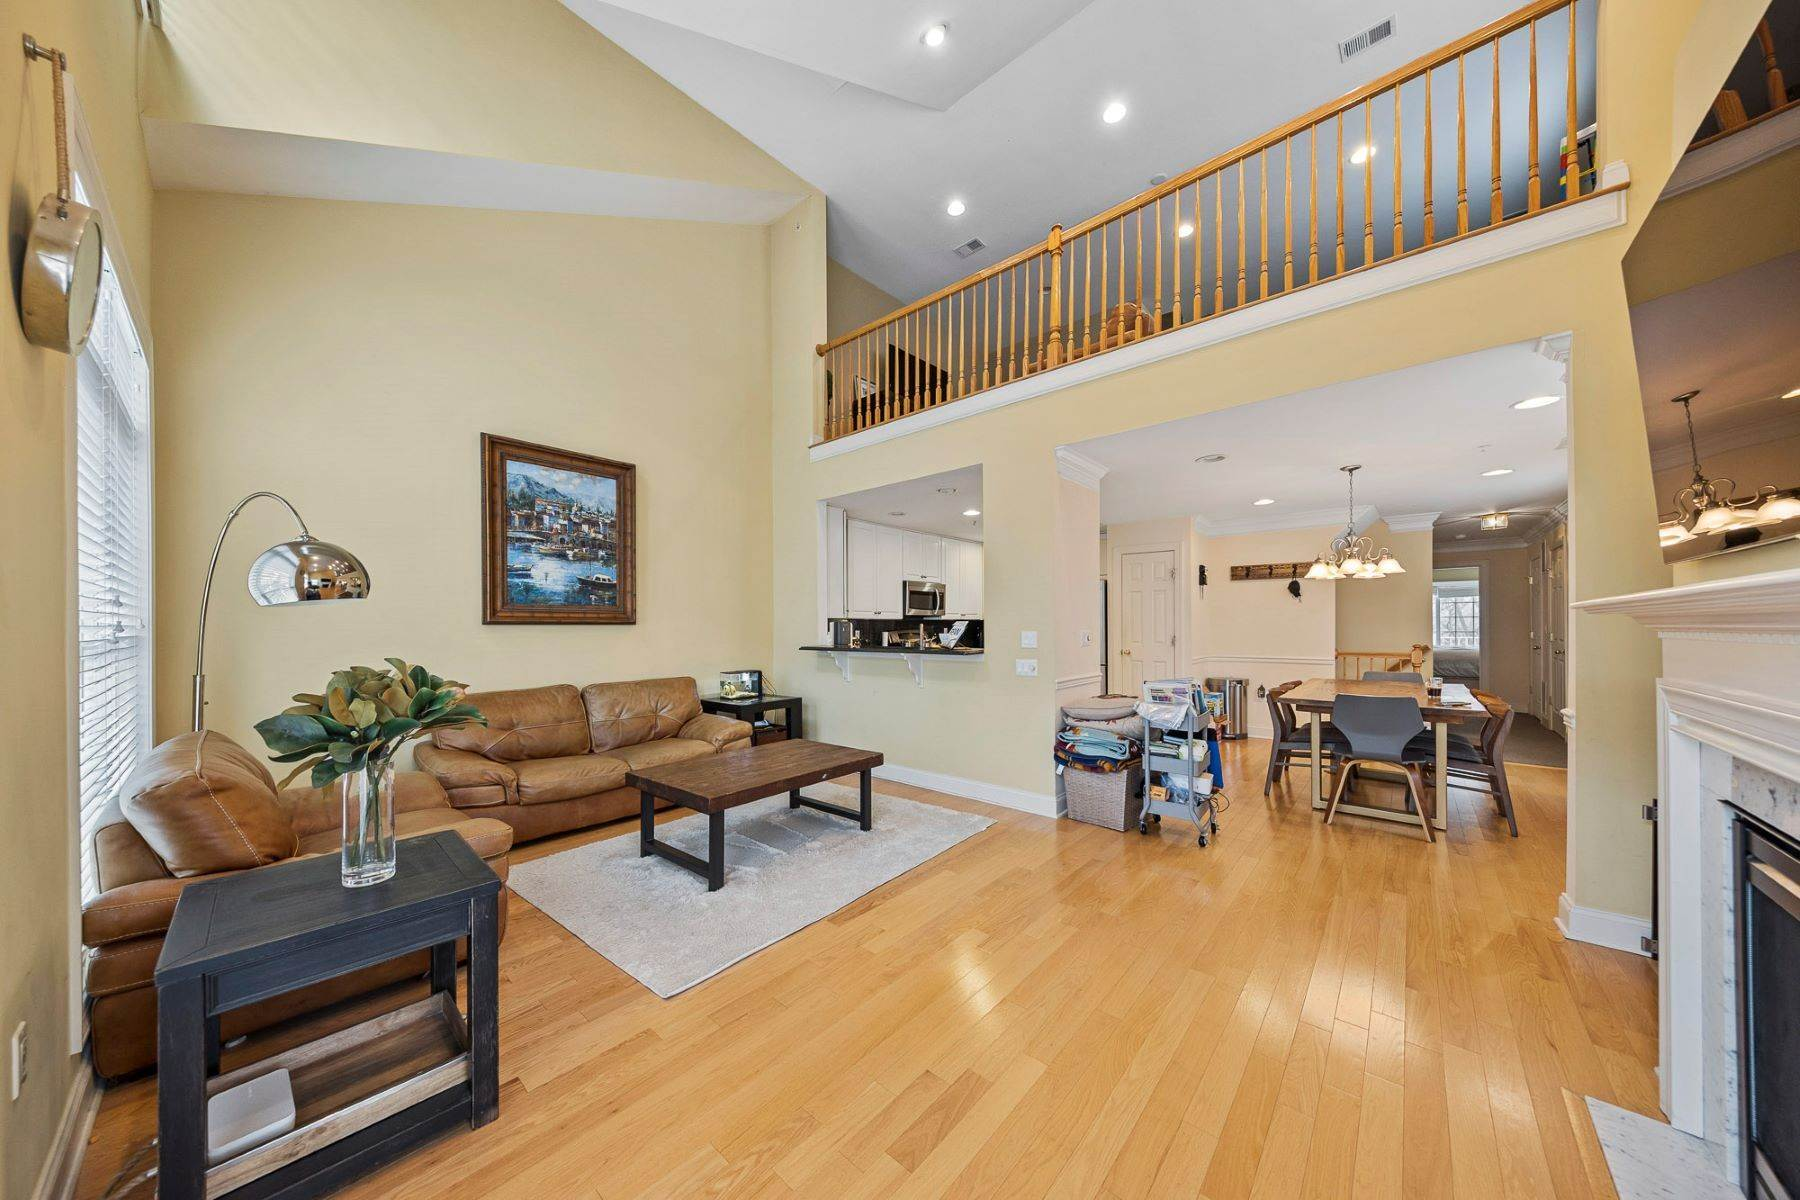 Condominiums for Sale at Valley View at Montvale 18A Forshee Cir Montvale, New Jersey 07645 United States